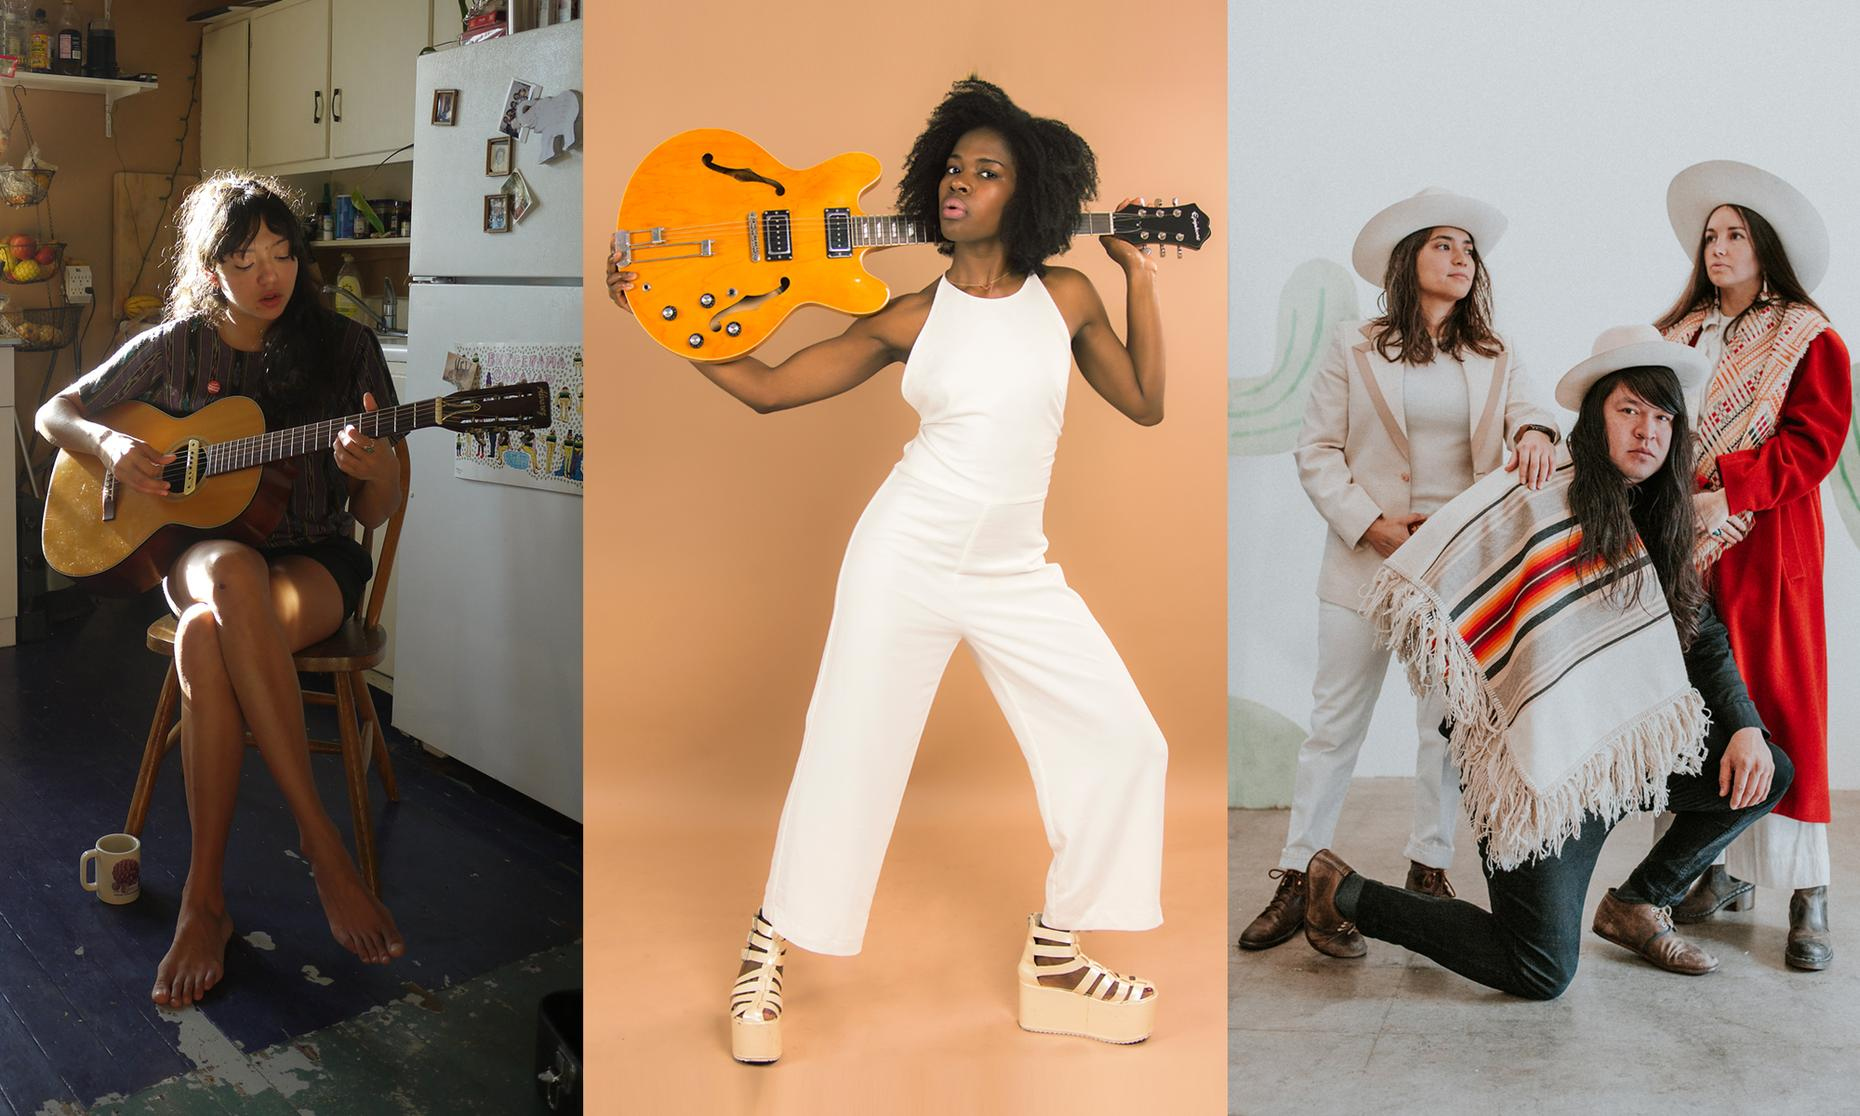 She Shreds: A Celebration of Women Guitarists